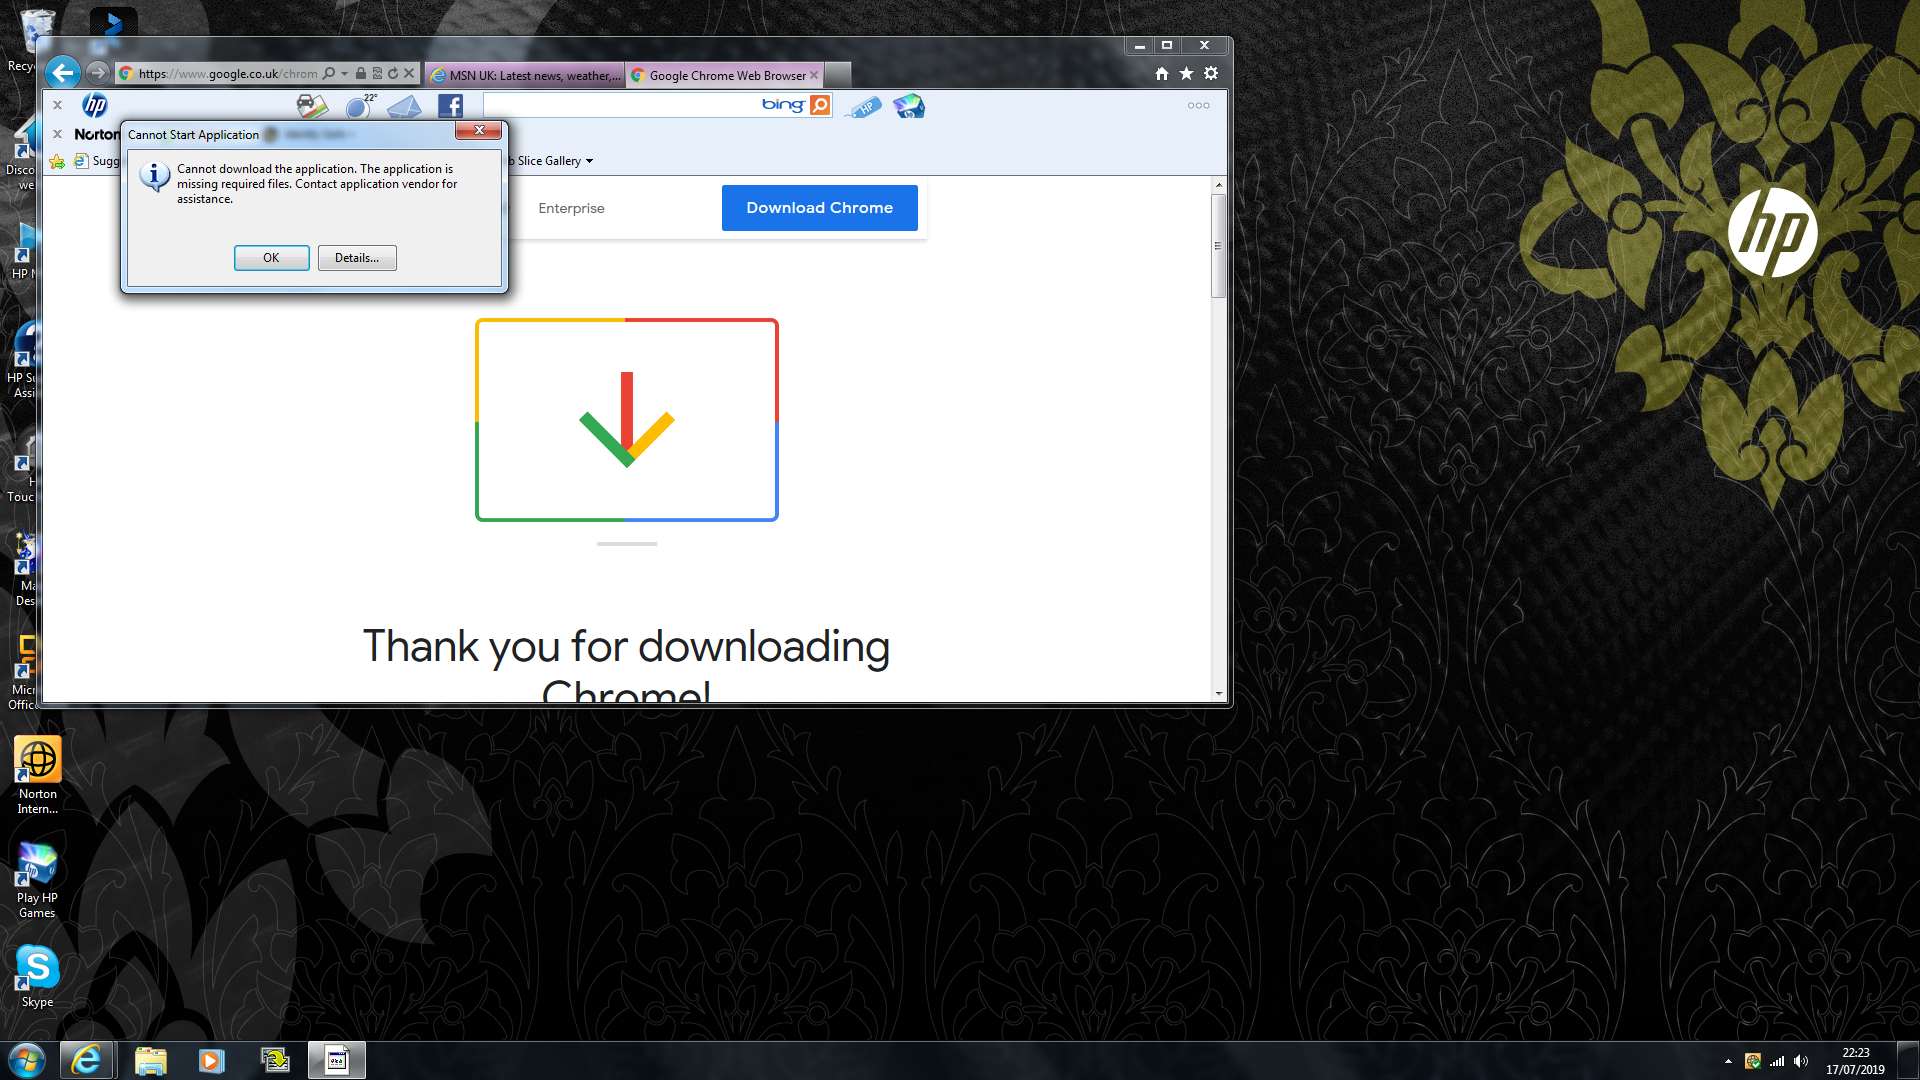 I cannot download Google Chrome to my HP Touchsmart 520 PC desktop